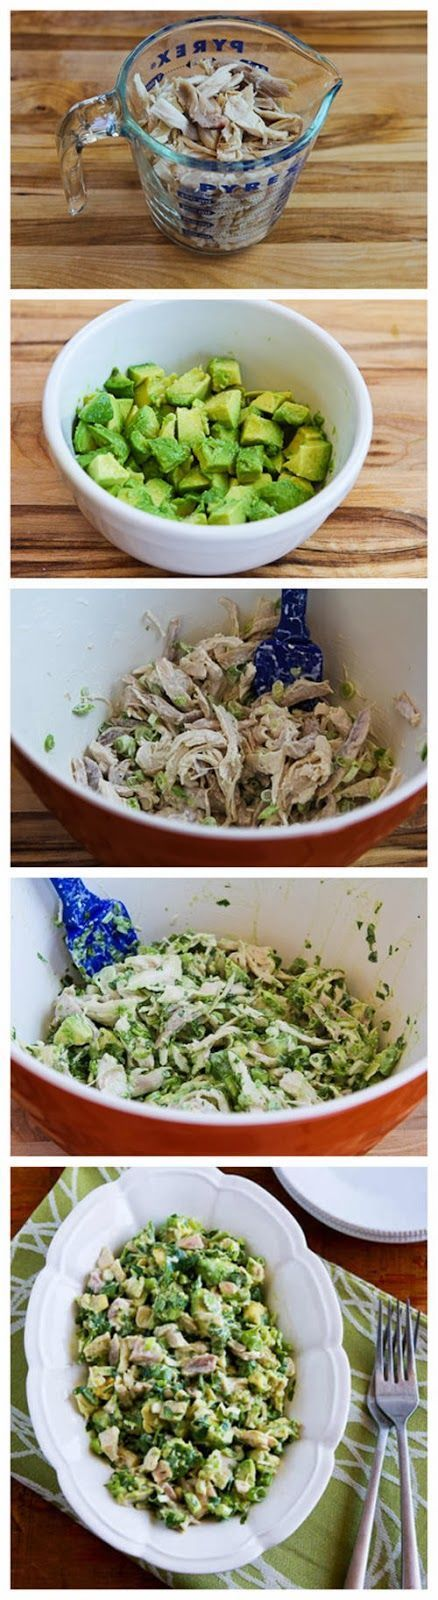 Kalyn's Kitchen®: Recipe for Chicken and Avocado Salad with Lime and Cilantro #Food-Drink